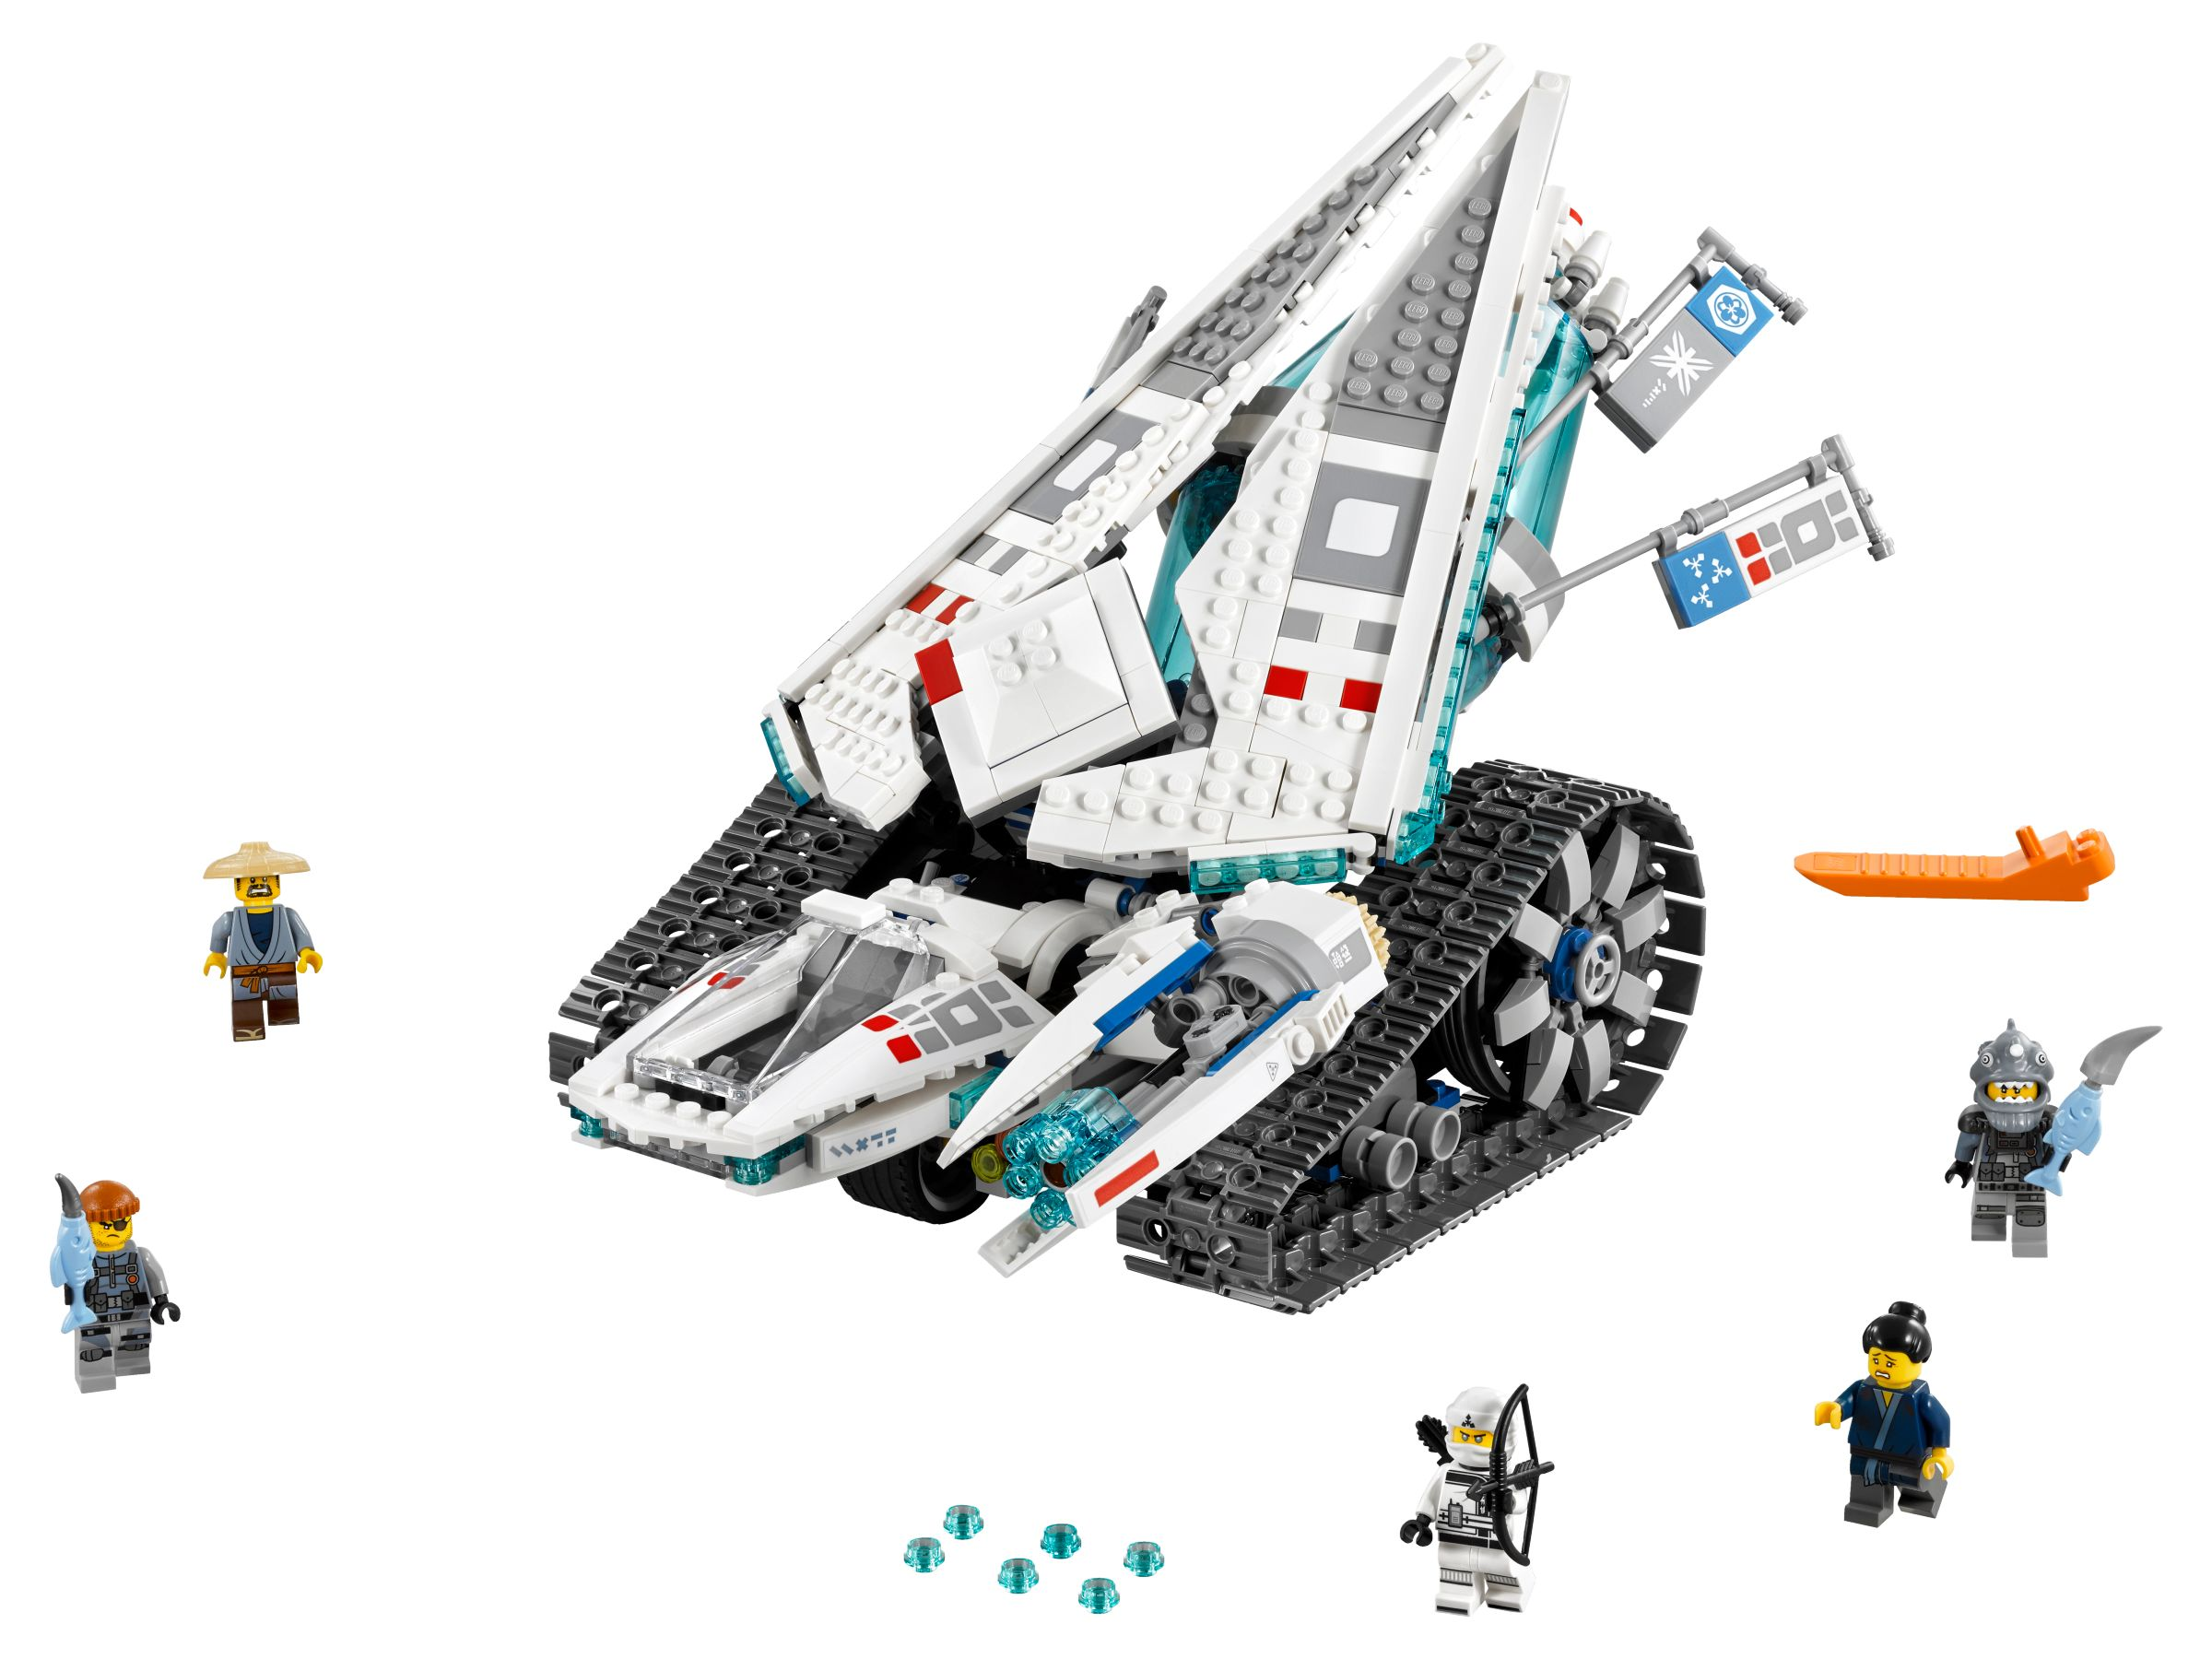 LEGO The LEGO Ninjago Movie 70616 Zane's Eis-Raupe